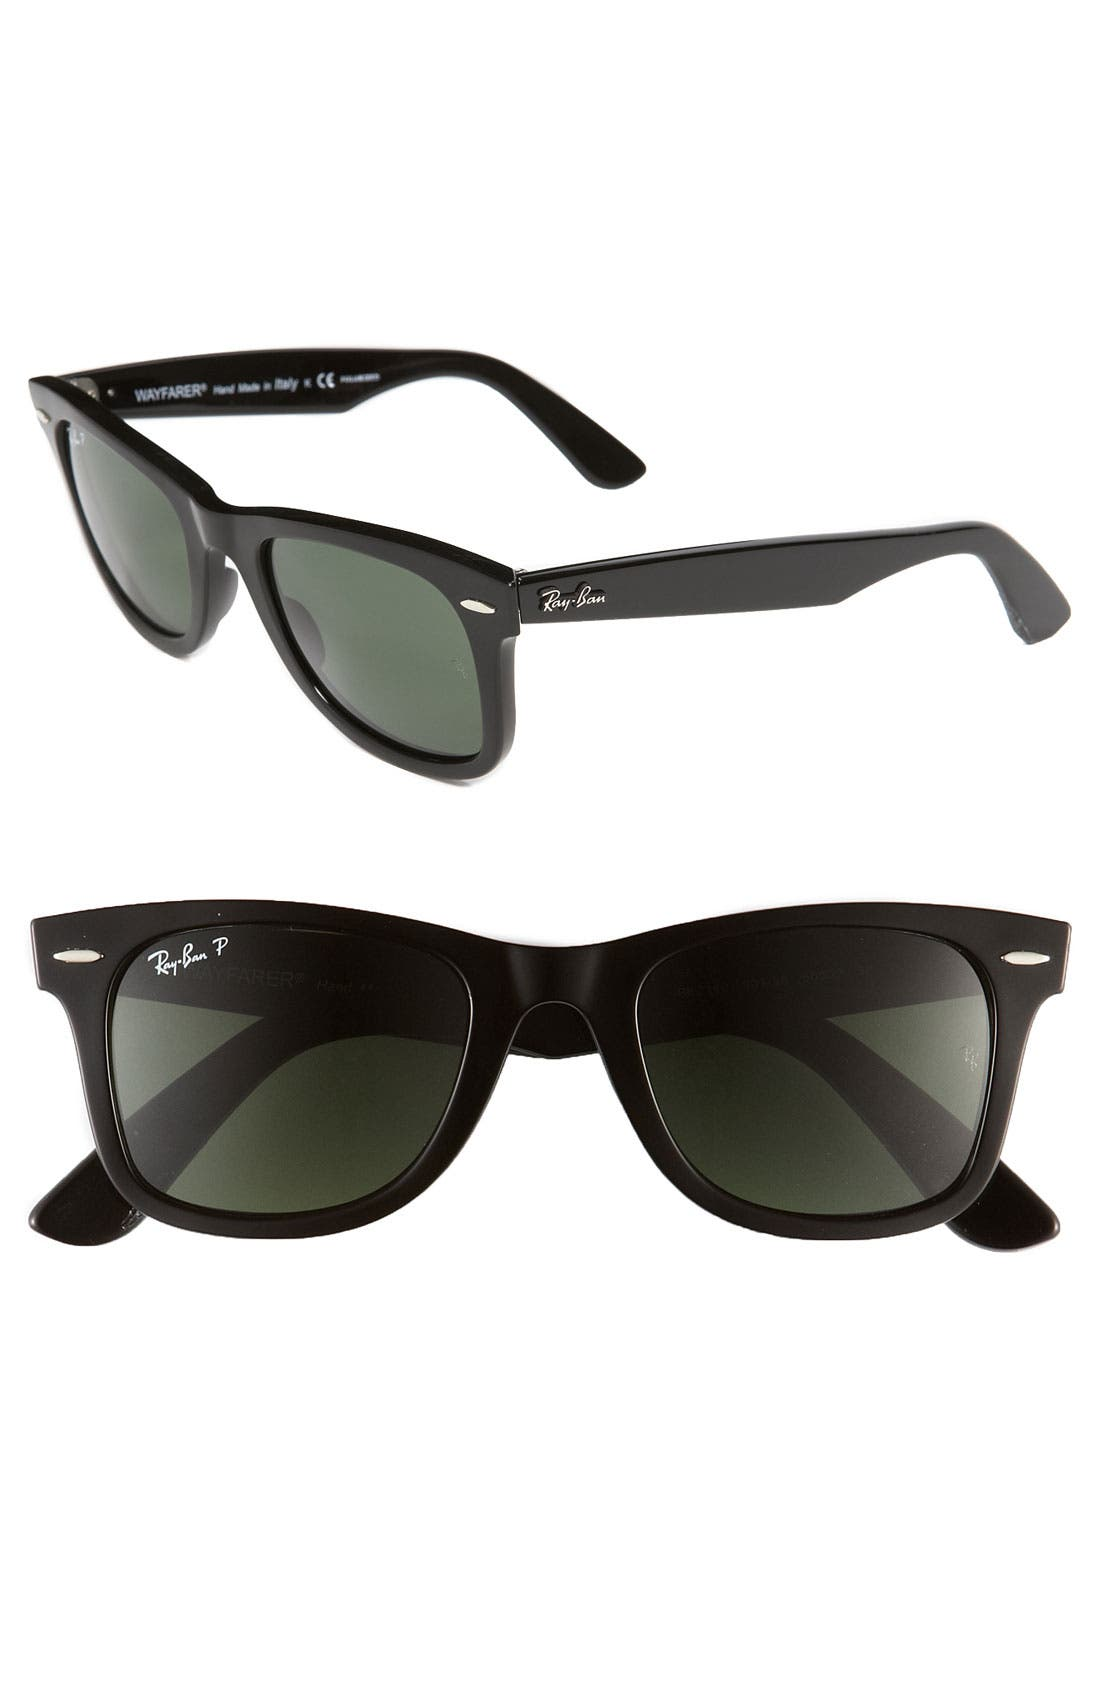 Ray-Ban Standard Classic Wayfarer 50mm Polarized Sunglasses